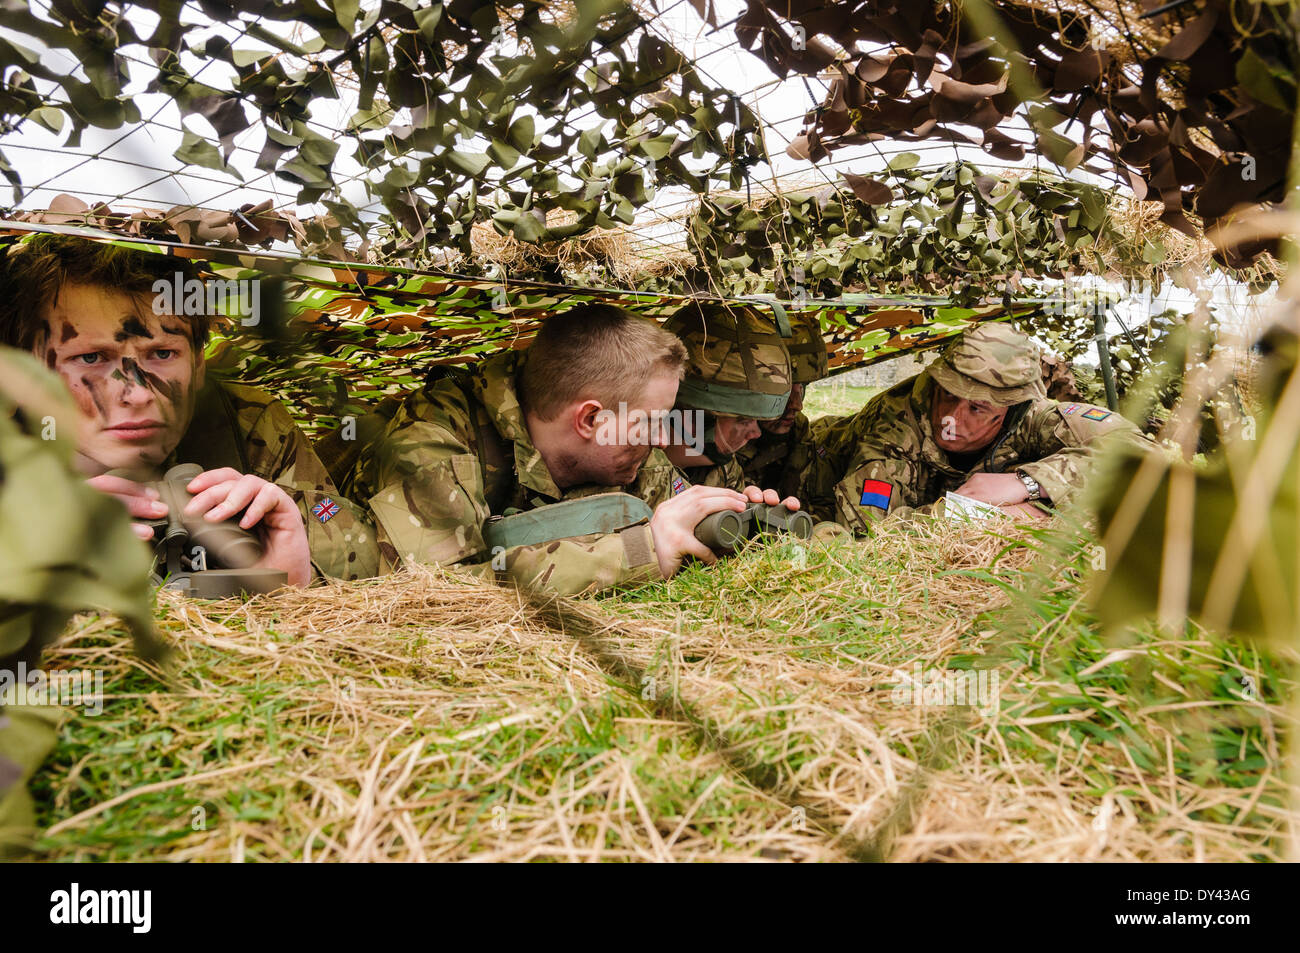 A senior officer gives instructions to soldiers as they hide underneath camouflage netting in a forward observation post - Stock Image